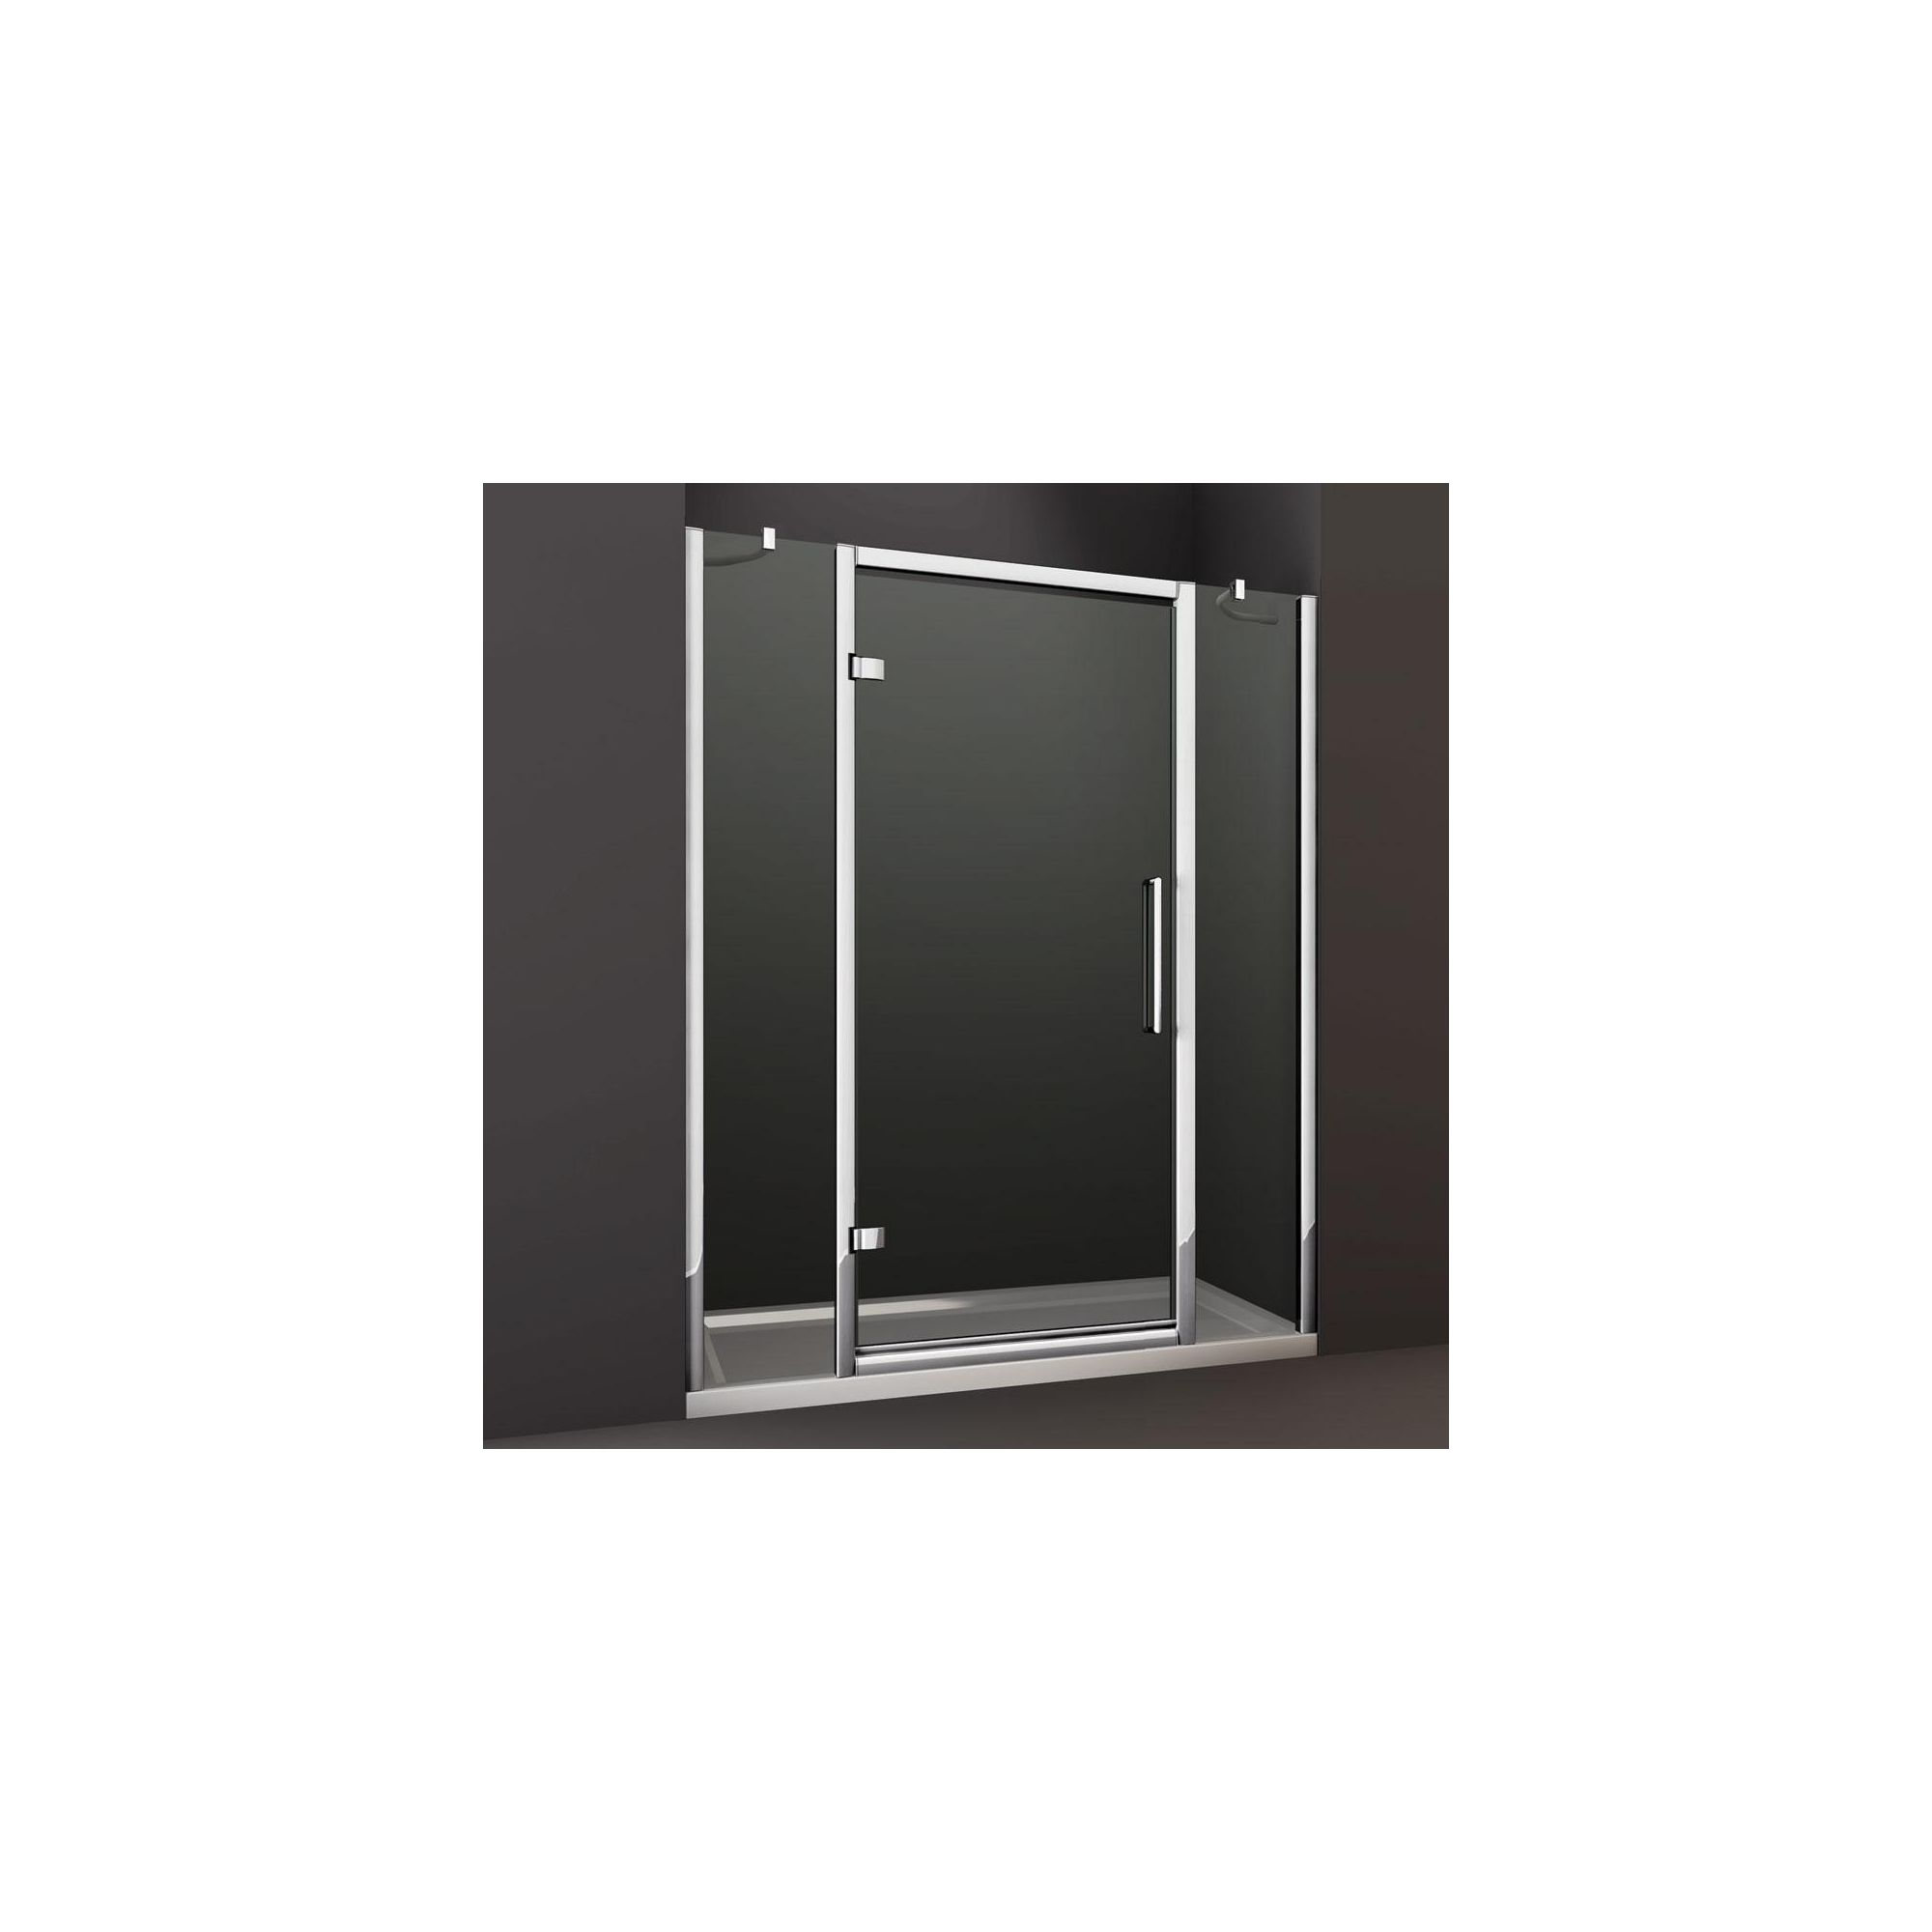 Merlyn Series 8 Double Inline Hinged Shower Door, 1200mm Wide, Chrome Frame, 8mm Glass at Tesco Direct